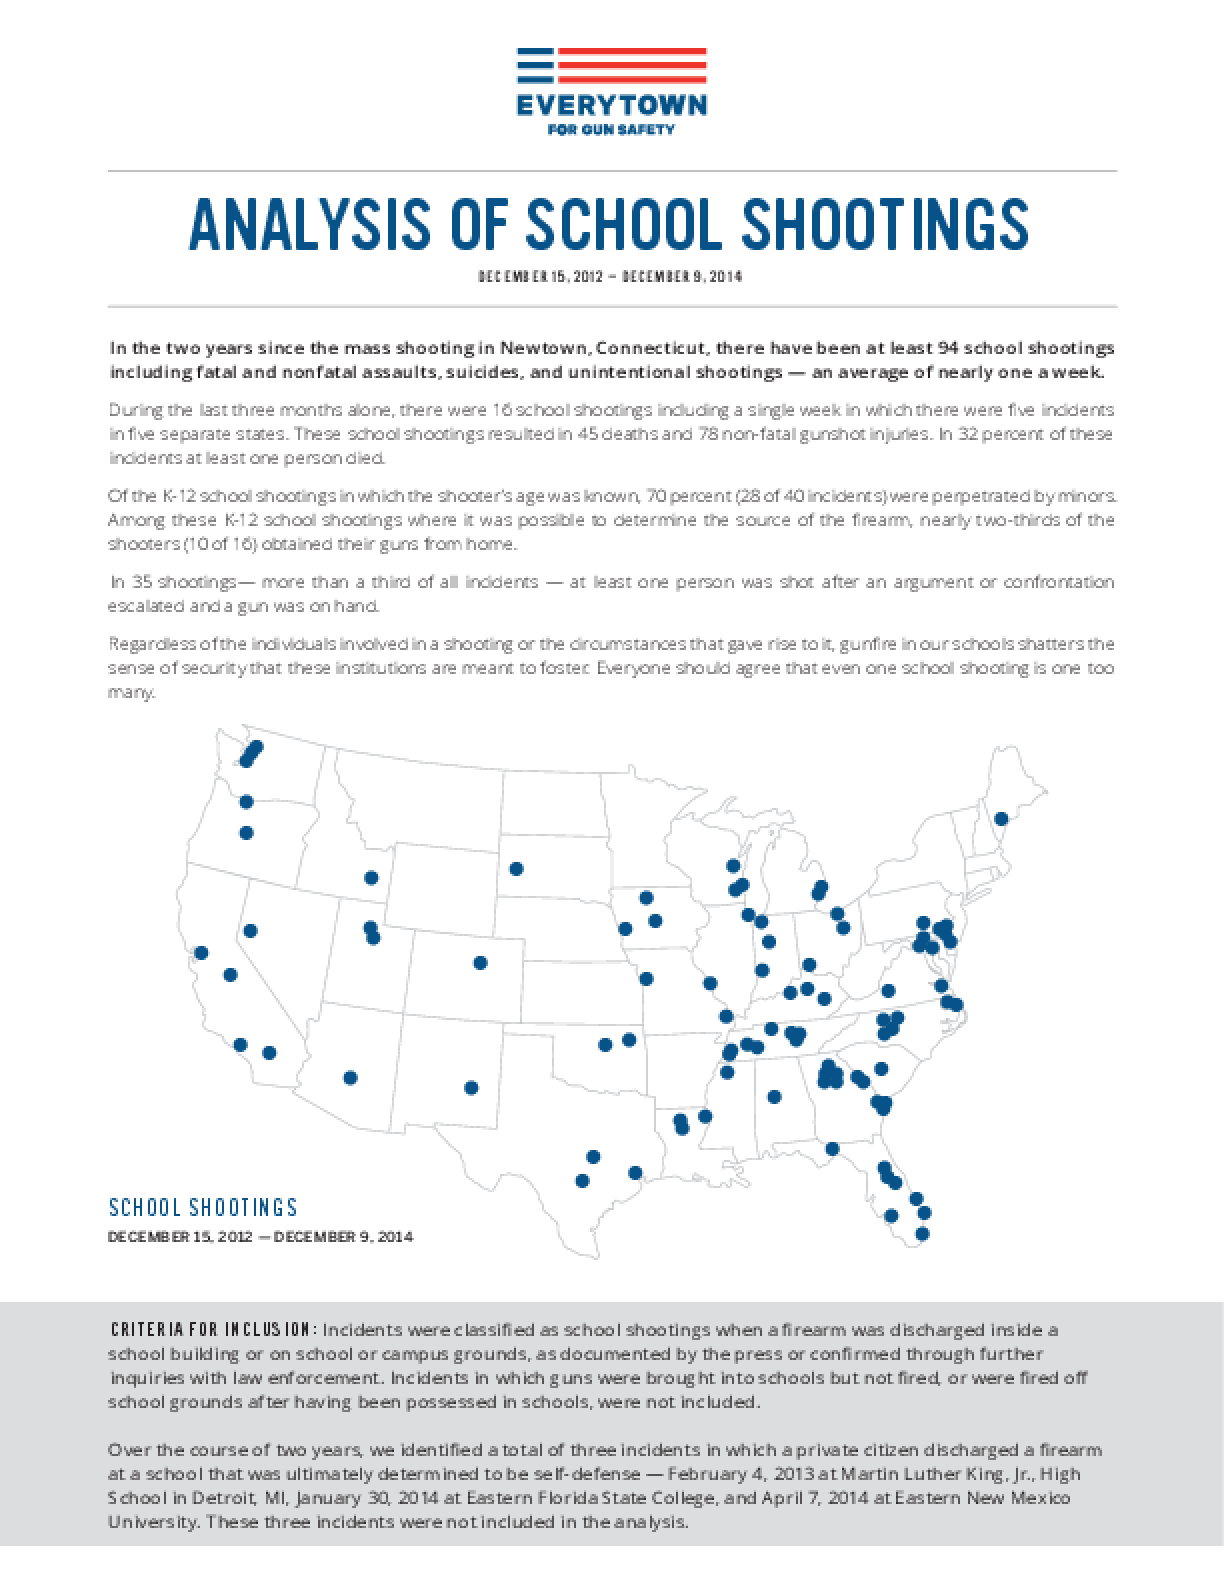 Analysis of School Shootings: December 15, 2012 - December 9, 2014